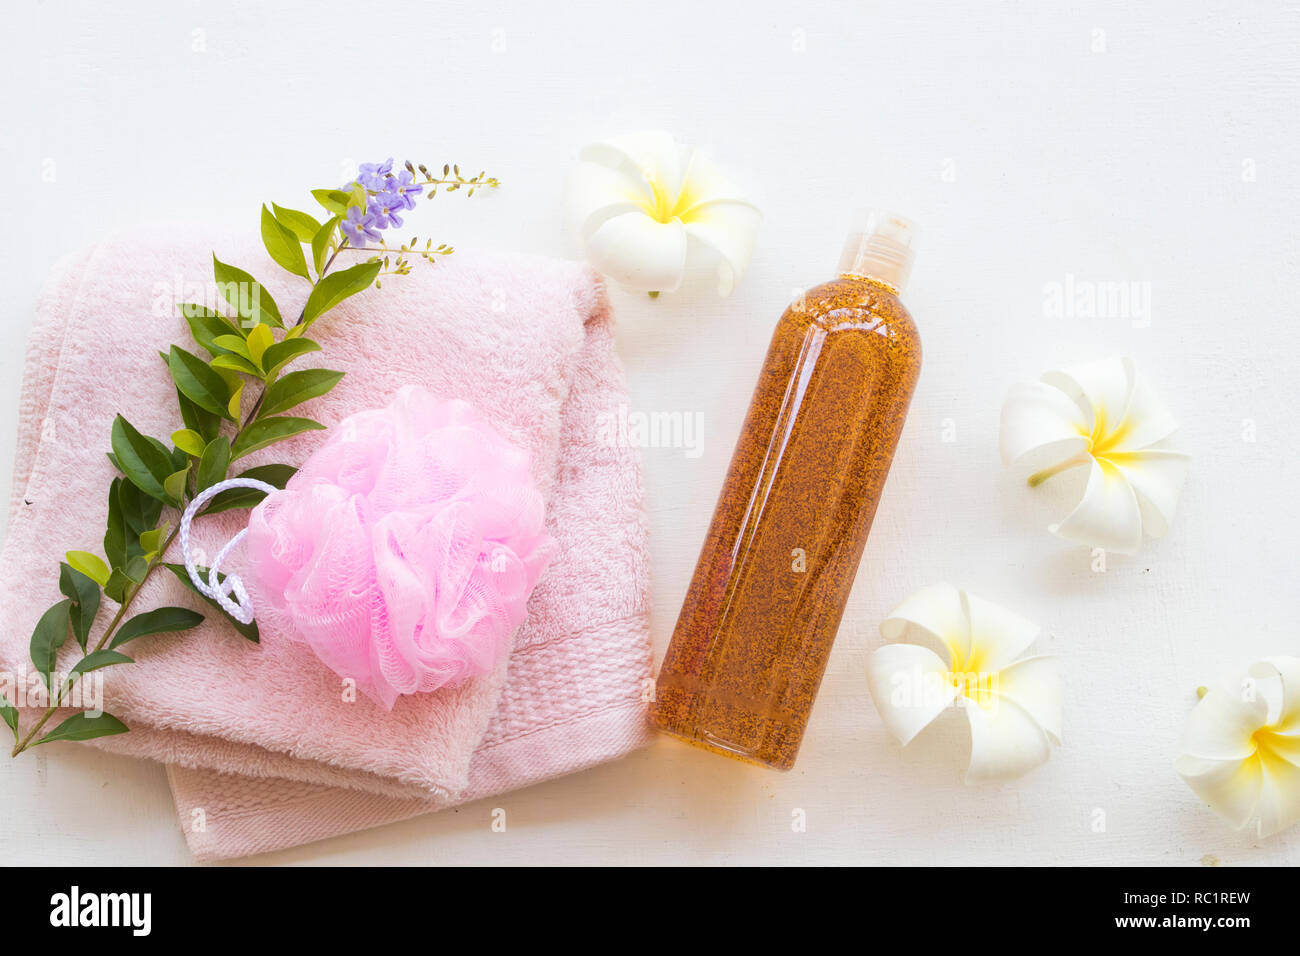 liquid soap exfoliating body wash smooth skin natural extract tamarind health care body skin with flowers frangipani - Stock Image